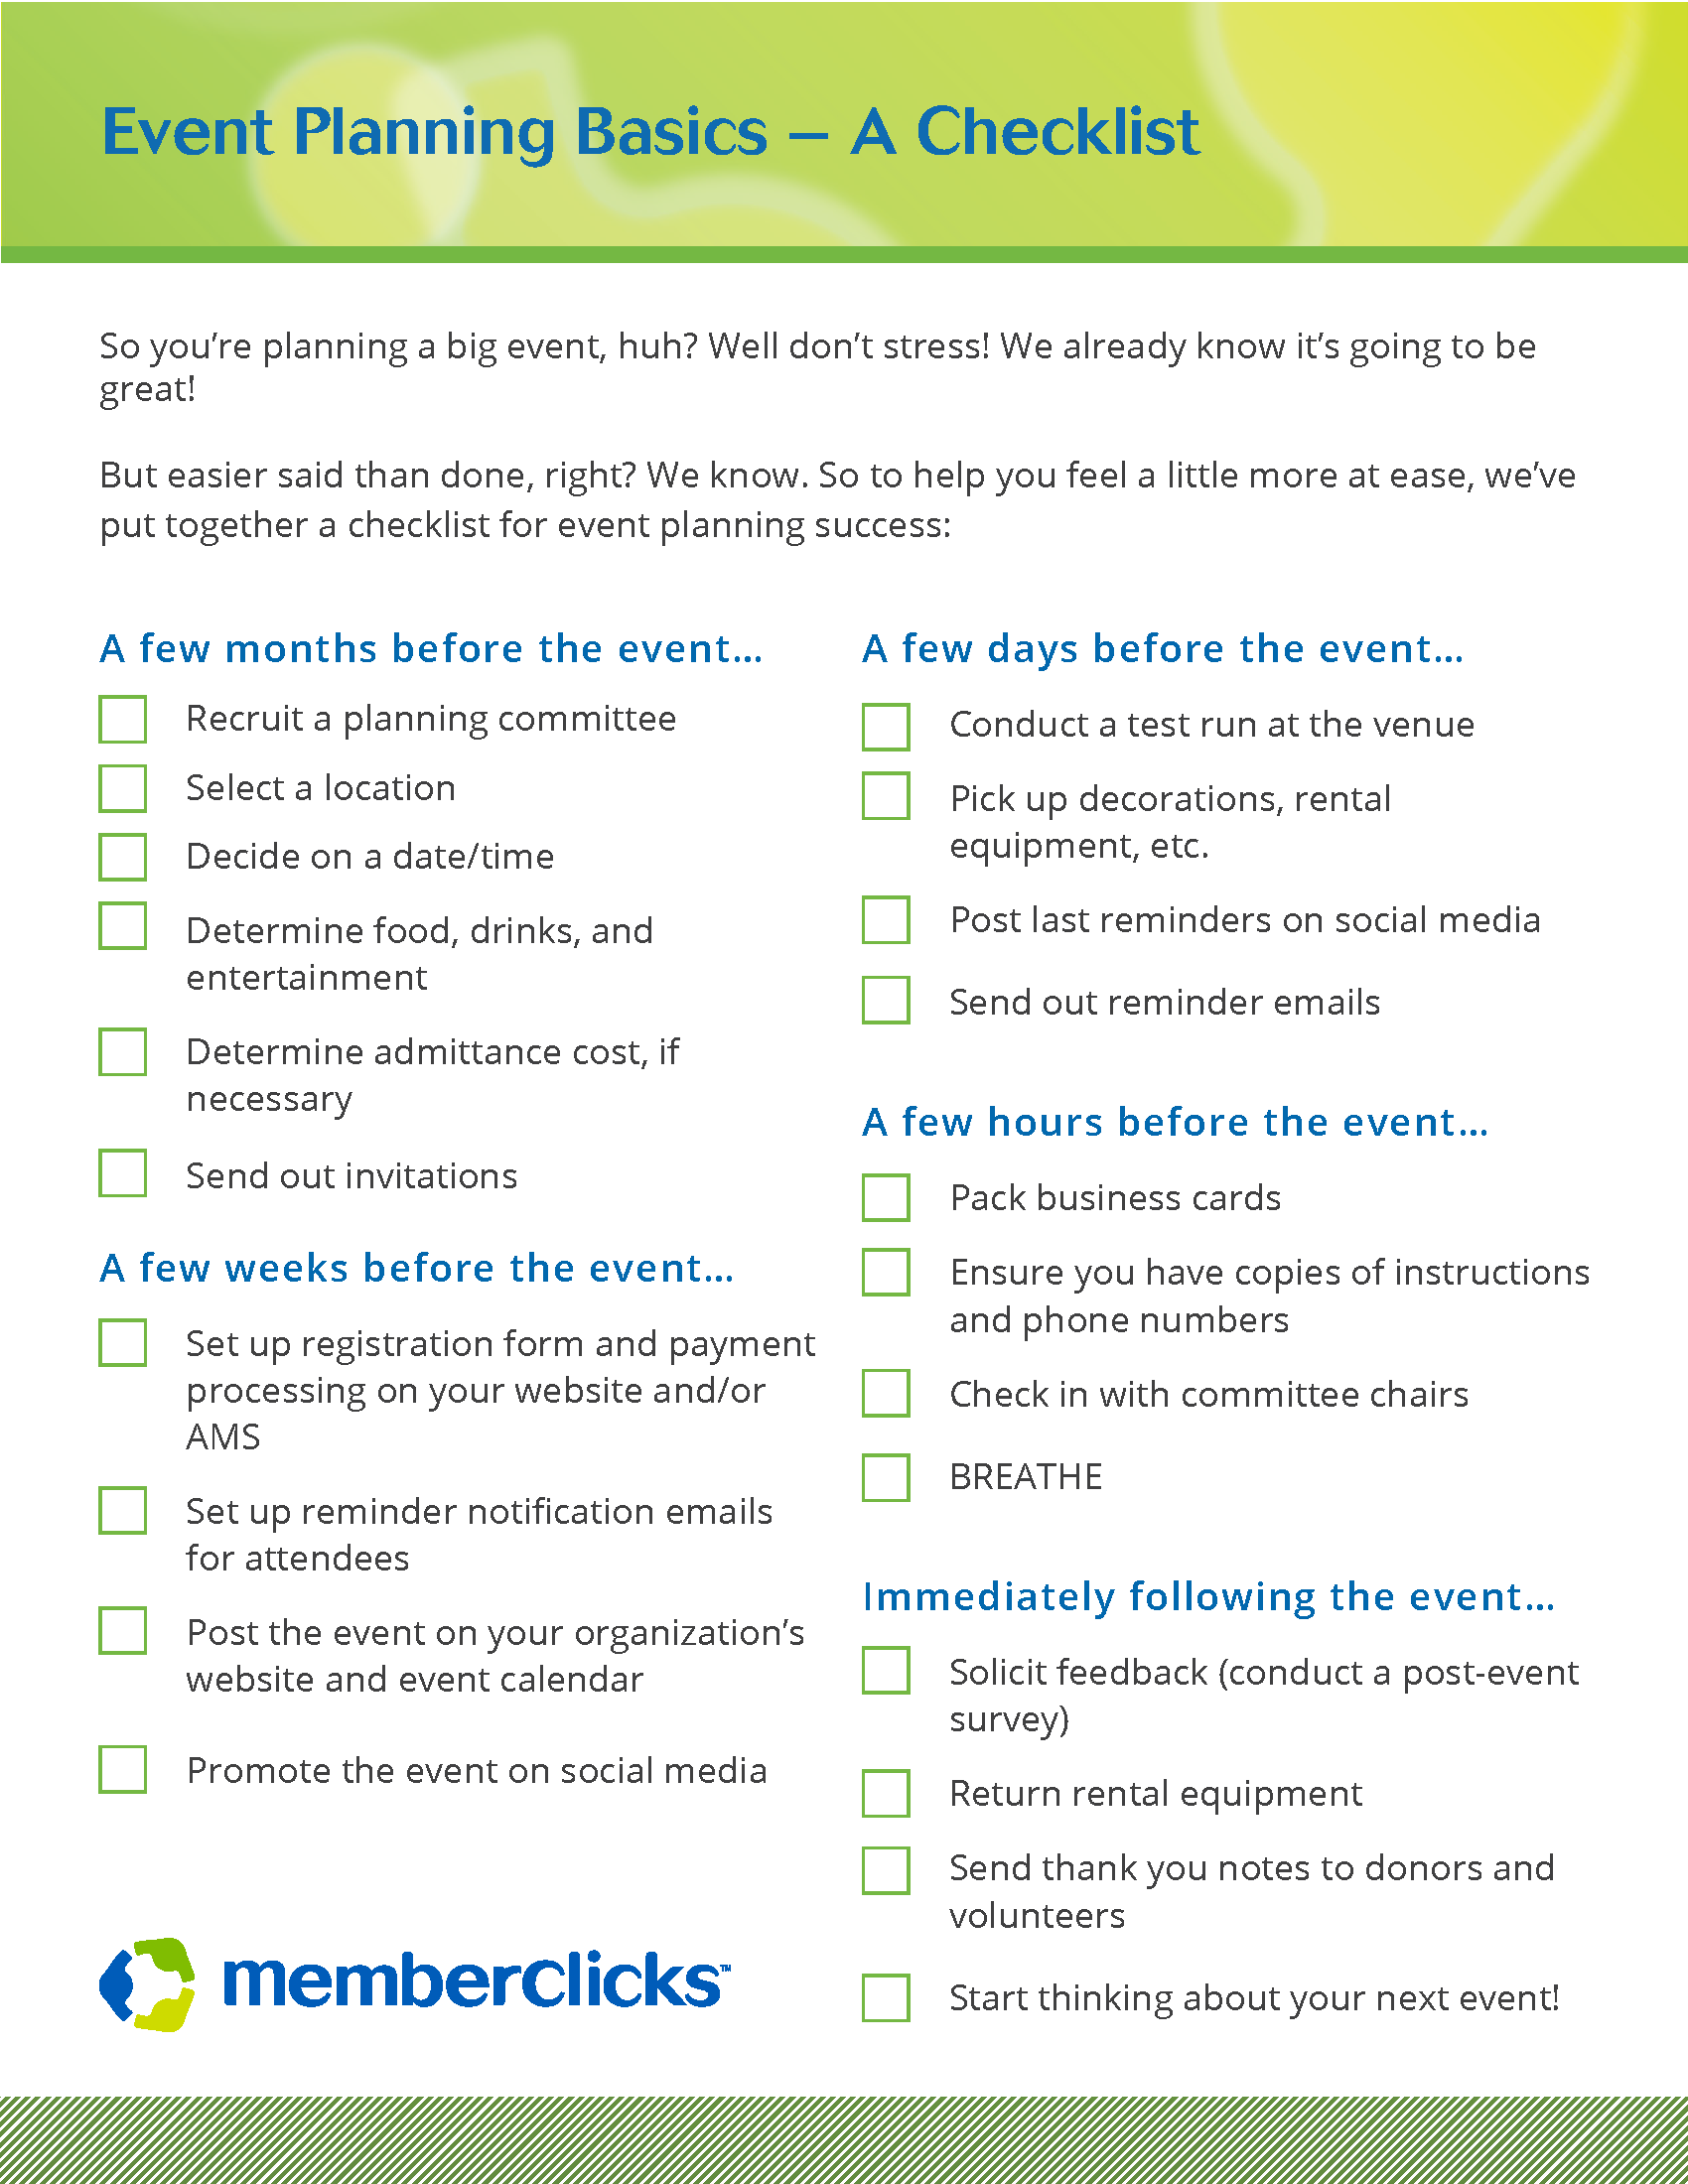 Even Planning Basics  A Checklist  Events